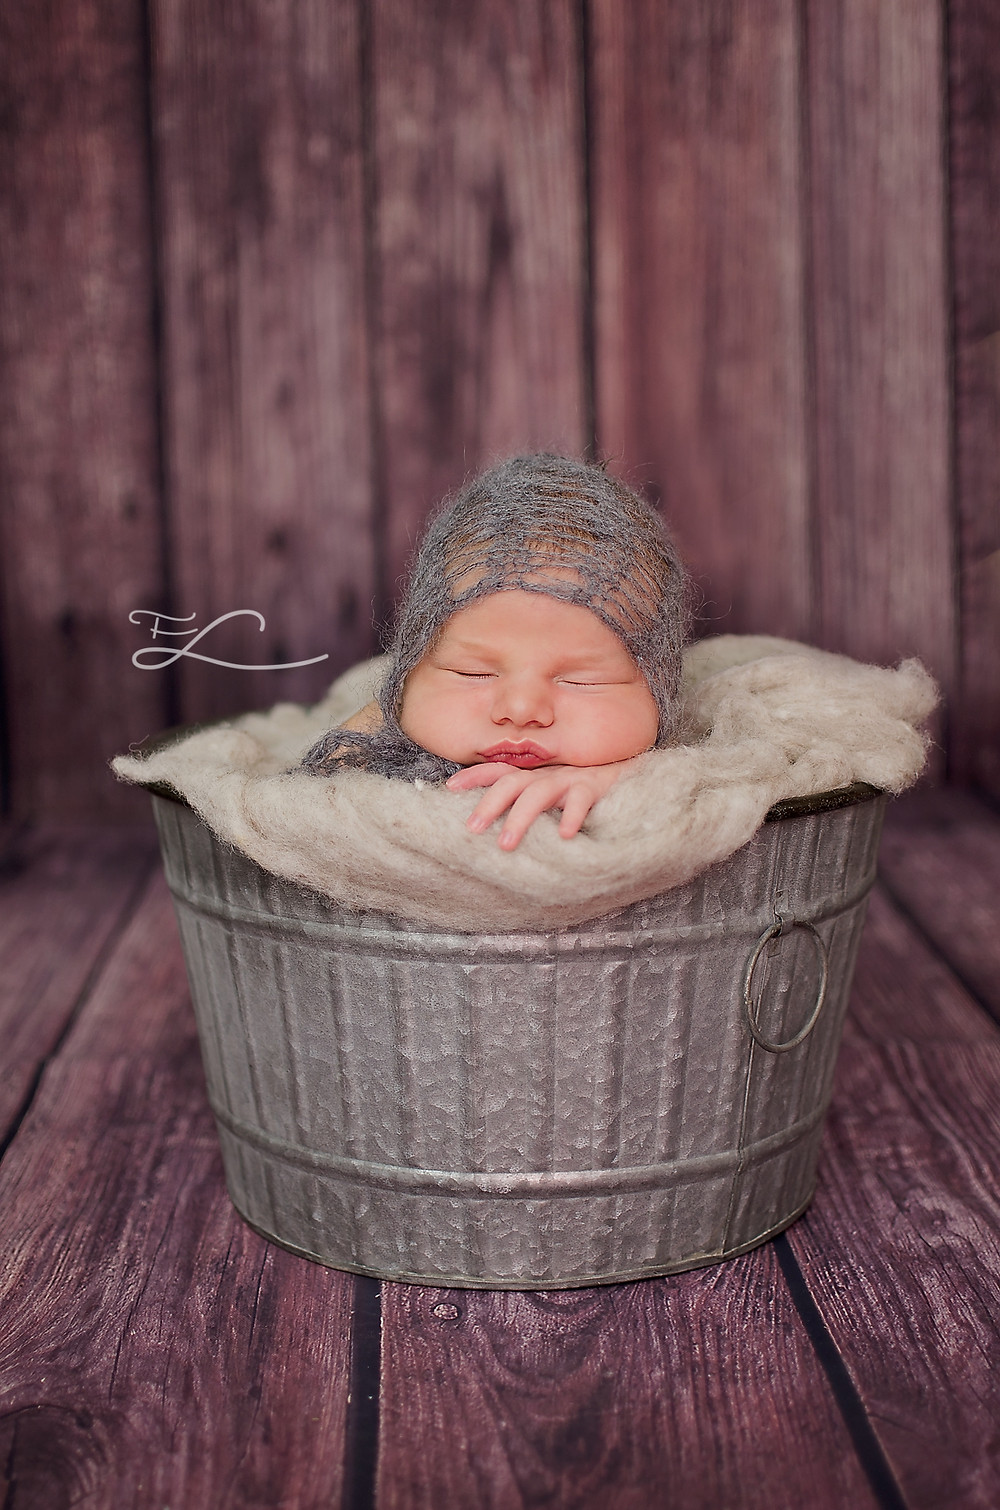 Sidney BC Baby photographer, Fawn Lily Photography, Newborn Photographer, Baby, Photos, Saanich, Saanichton, Victoria BC